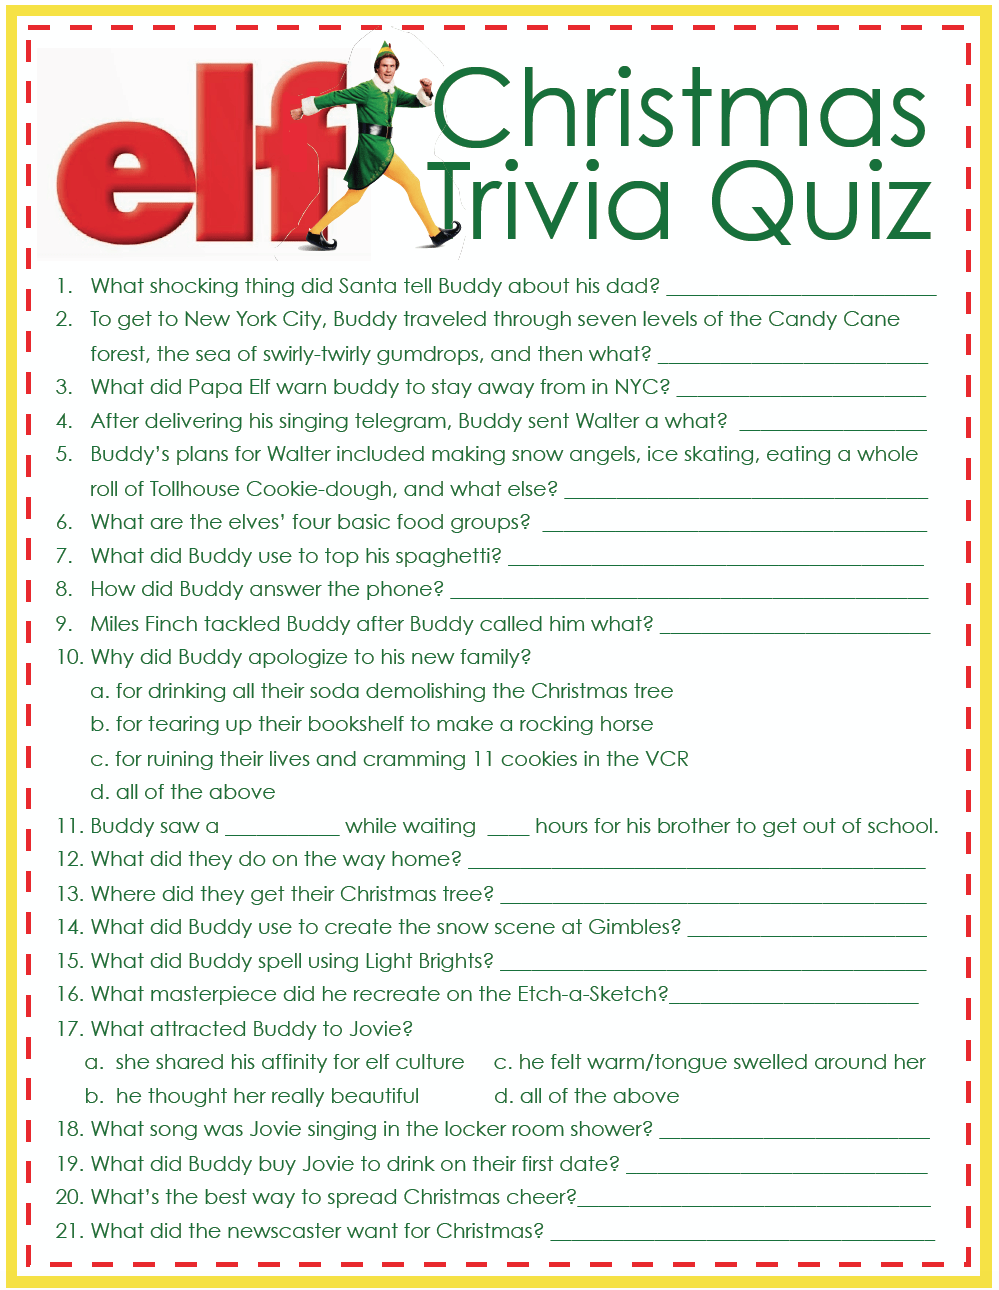 Free Printable Christmas Trivia Game Question And Answers Merry Christmas Memes 2021